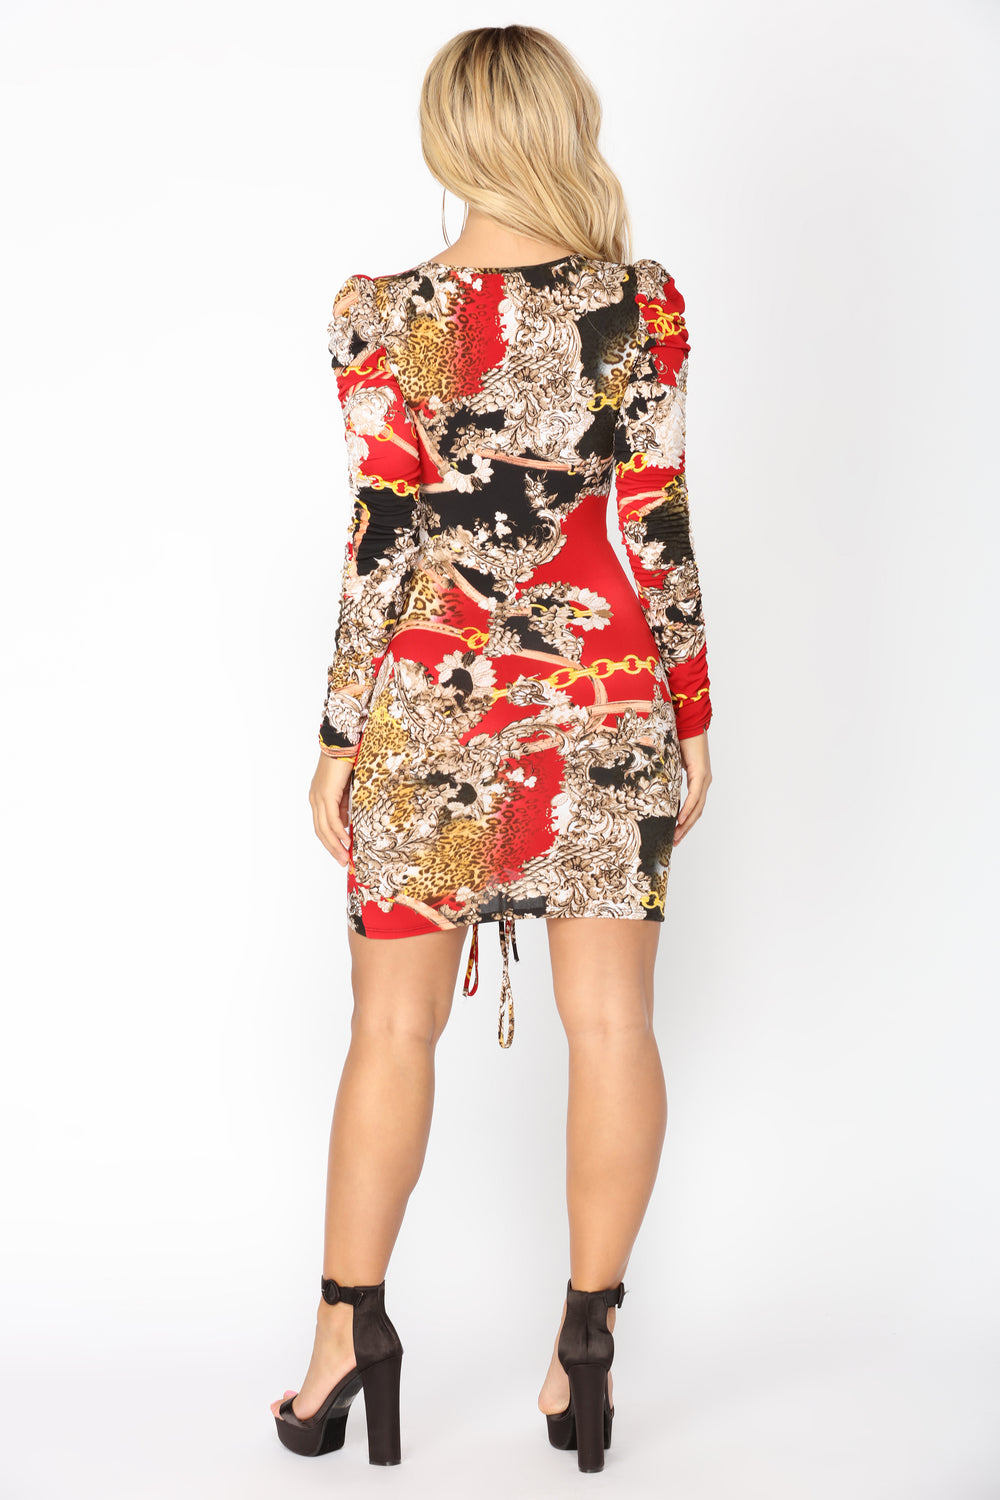 Wild One Ruched Dress - Red Multi